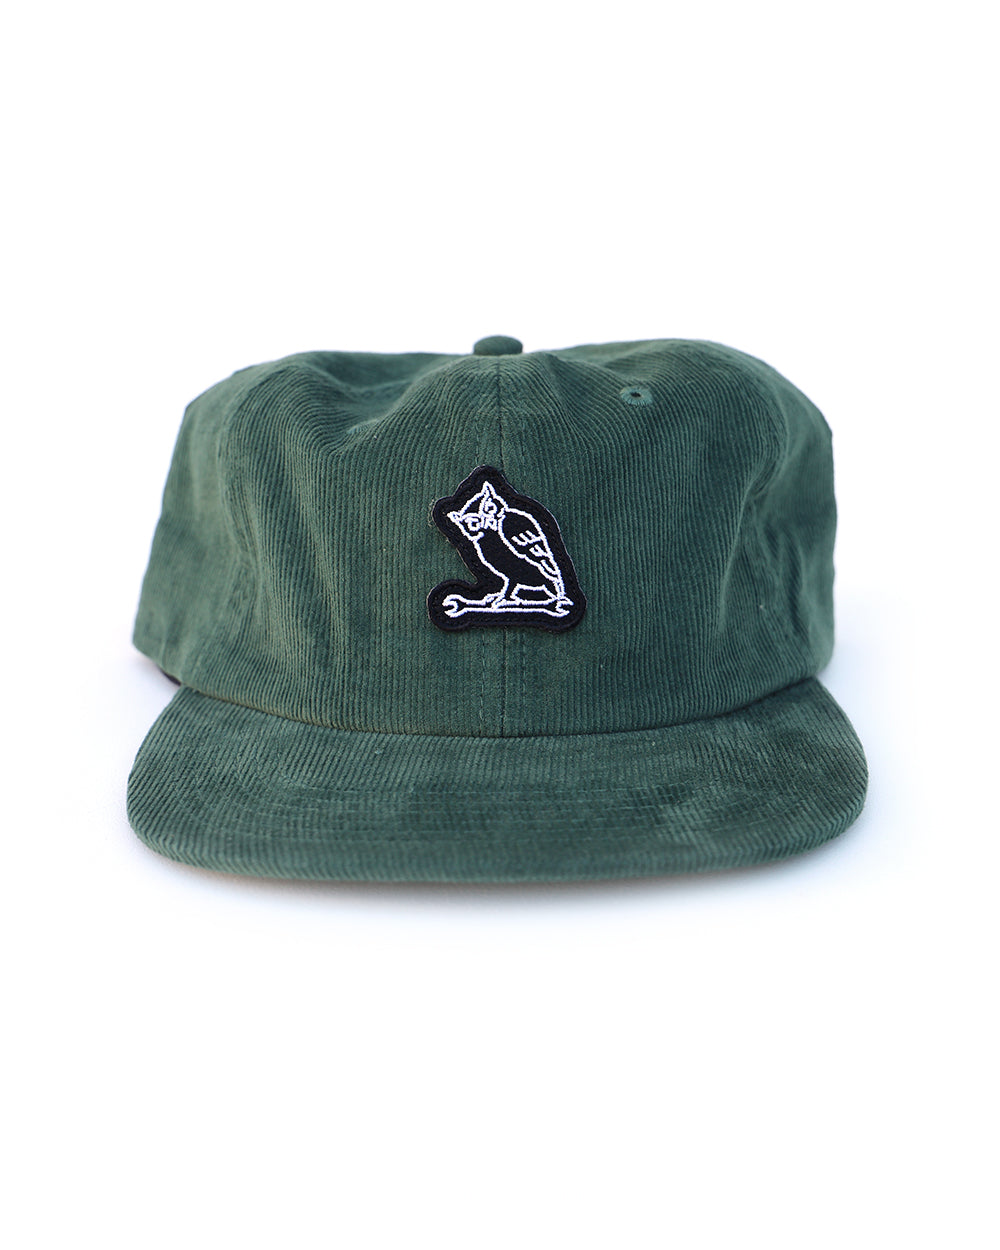 TF NIGHT CREW OWL CORDUROY CAP - OLIVE - Tankfarm & Co.